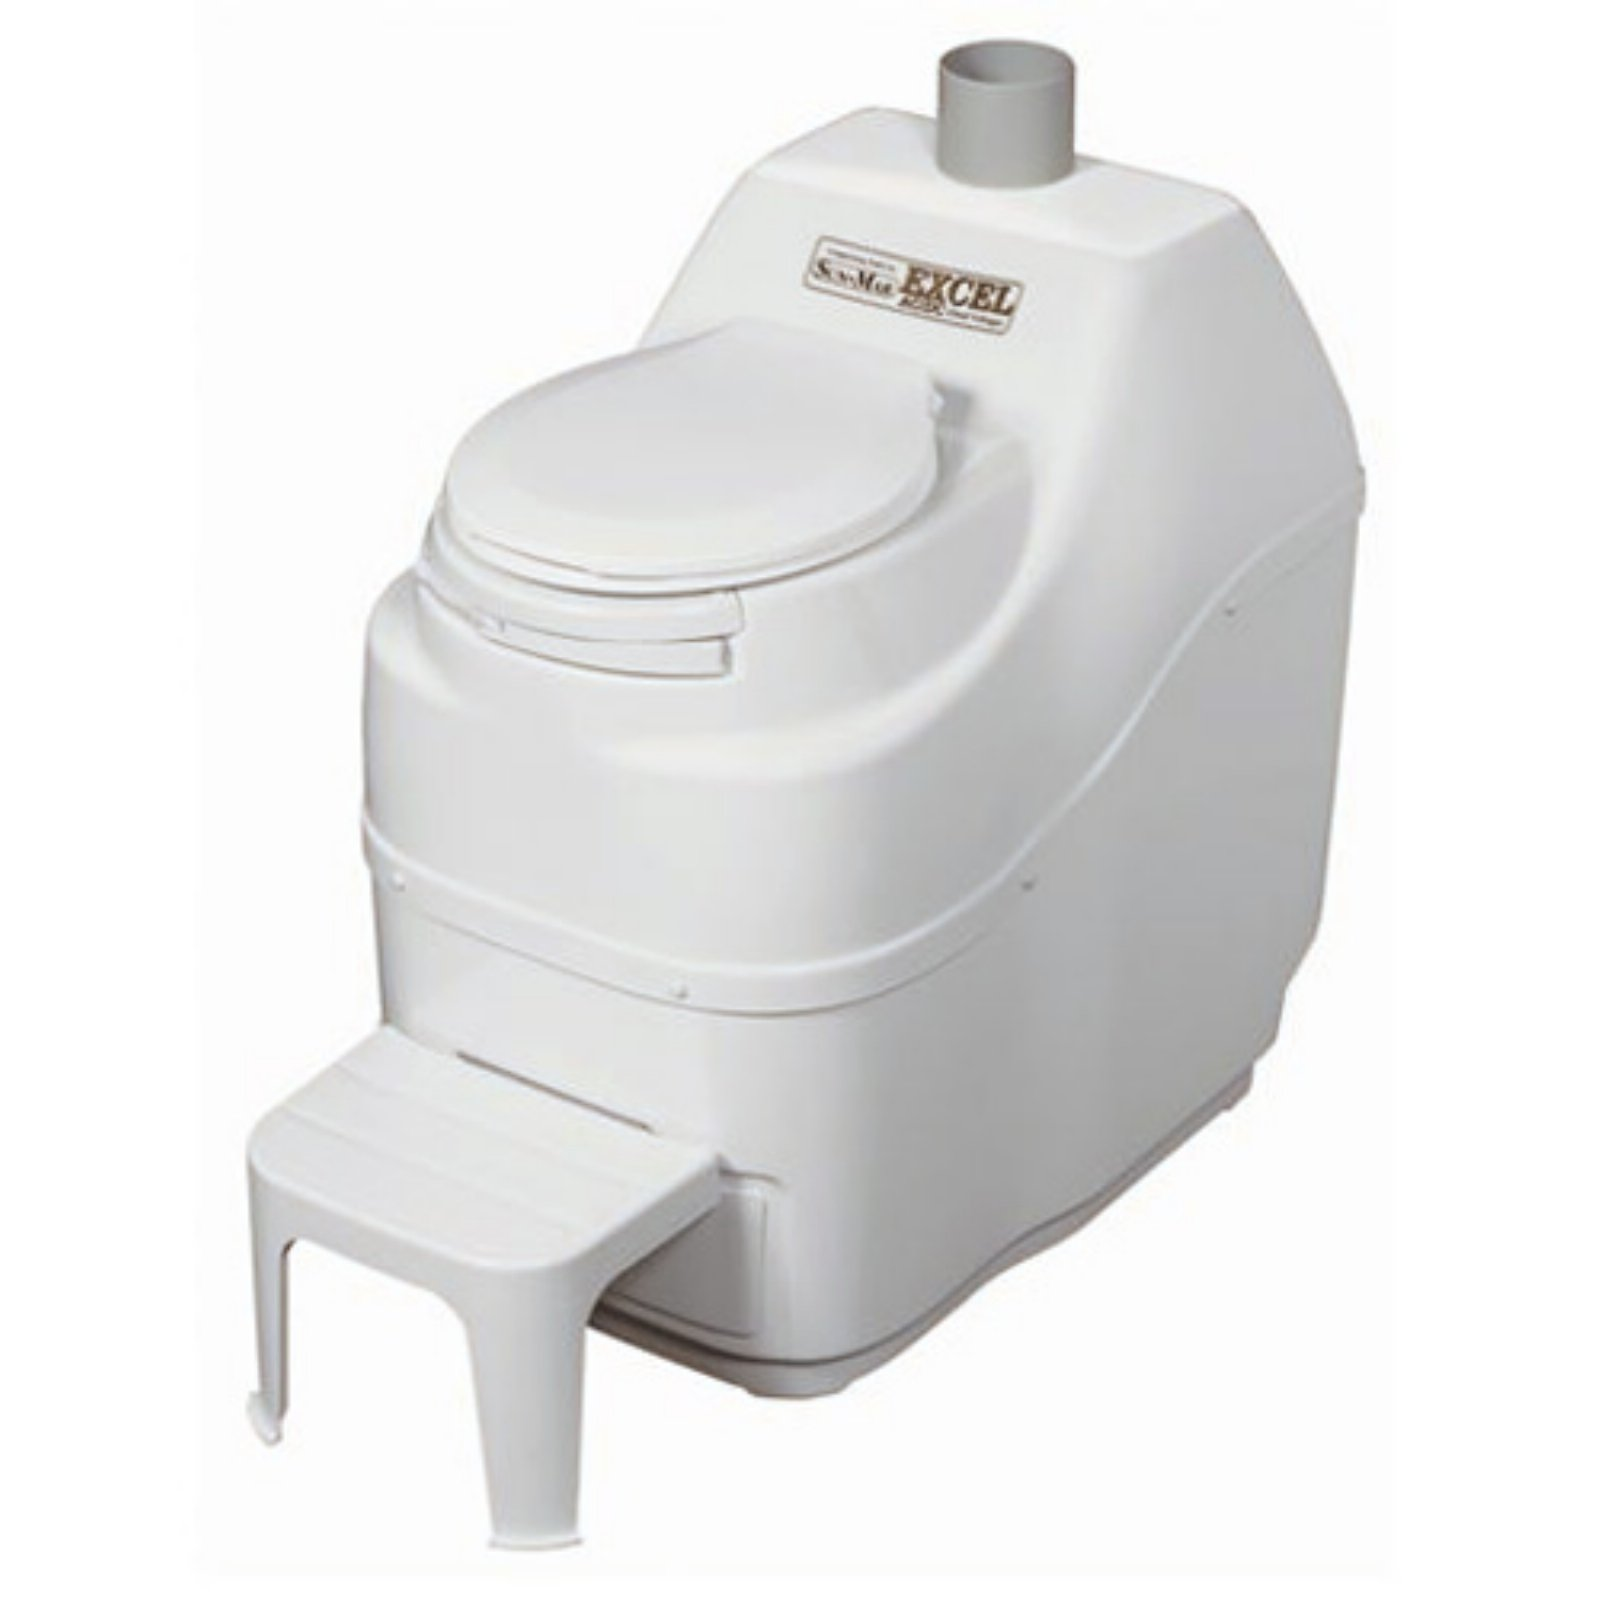 Sun-Mar Excel Non-Electric Waterless Composting Toilet by Sun-Mar Corp.